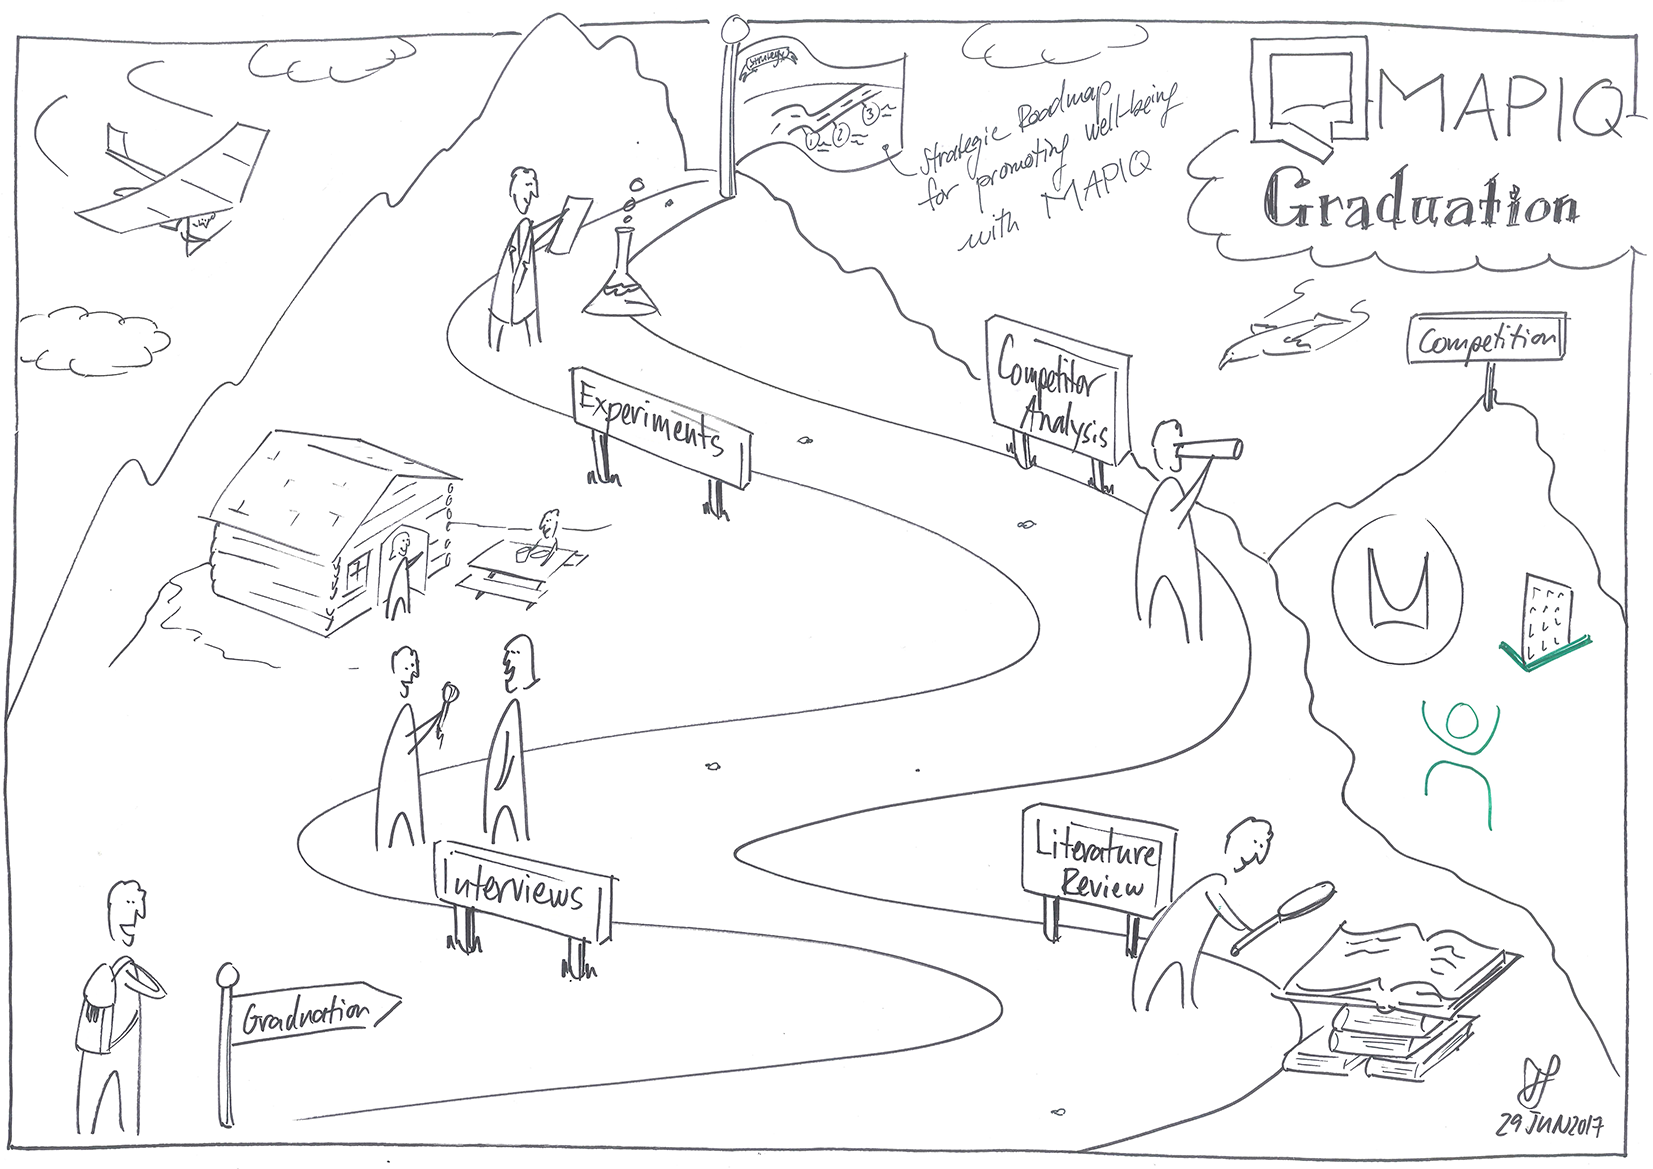 Visualizing the proposed approach for my Master's thesis with software company Mapiq.